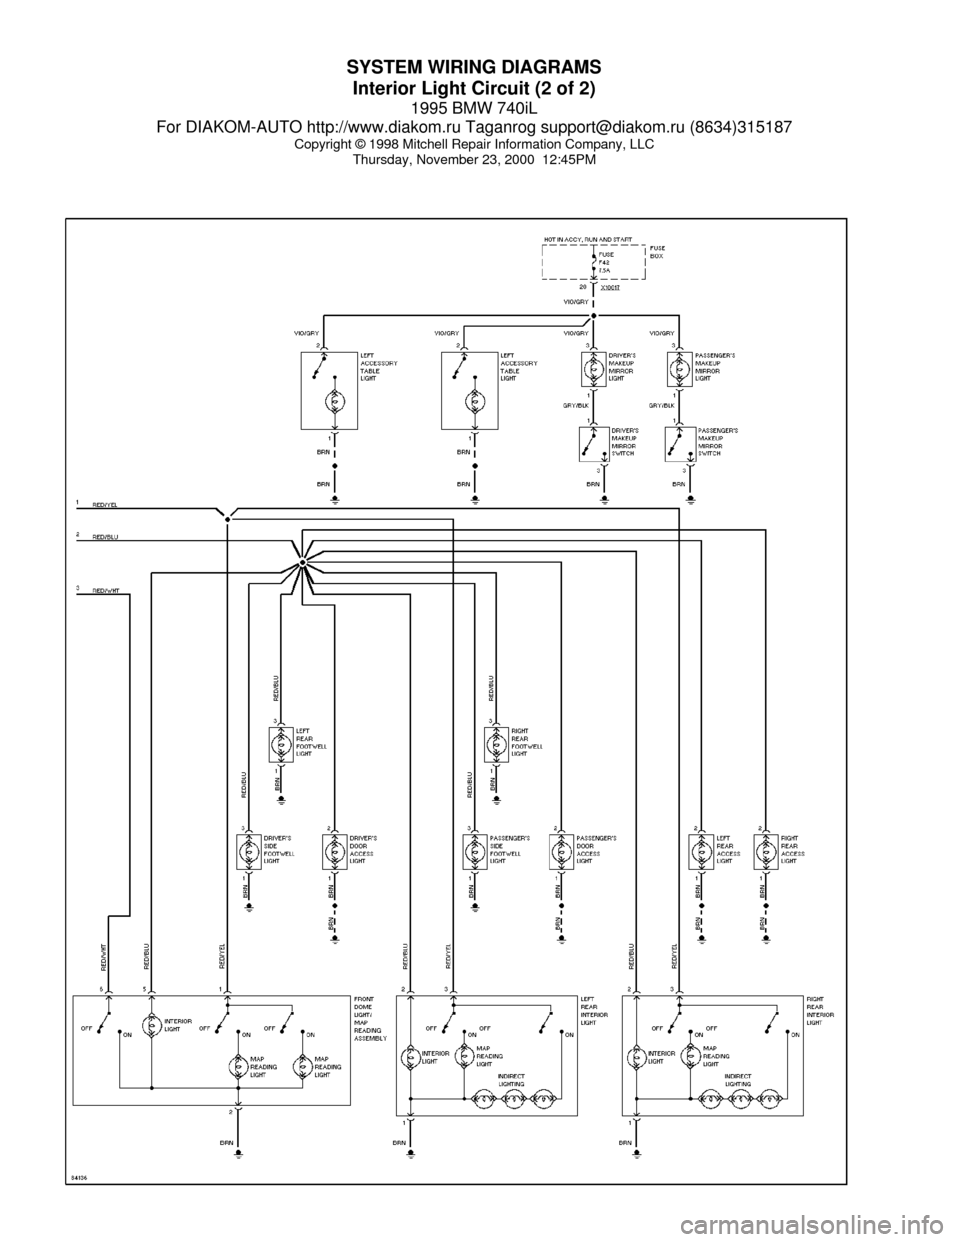 1998 Bmw 740il Wiring Schematic - Wiring Diagram Text return-improve -  return-improve.albergoristorantecanzo.it | 1998 Bmw 740il Wiring Schematic |  | return-improve.albergoristorantecanzo.it